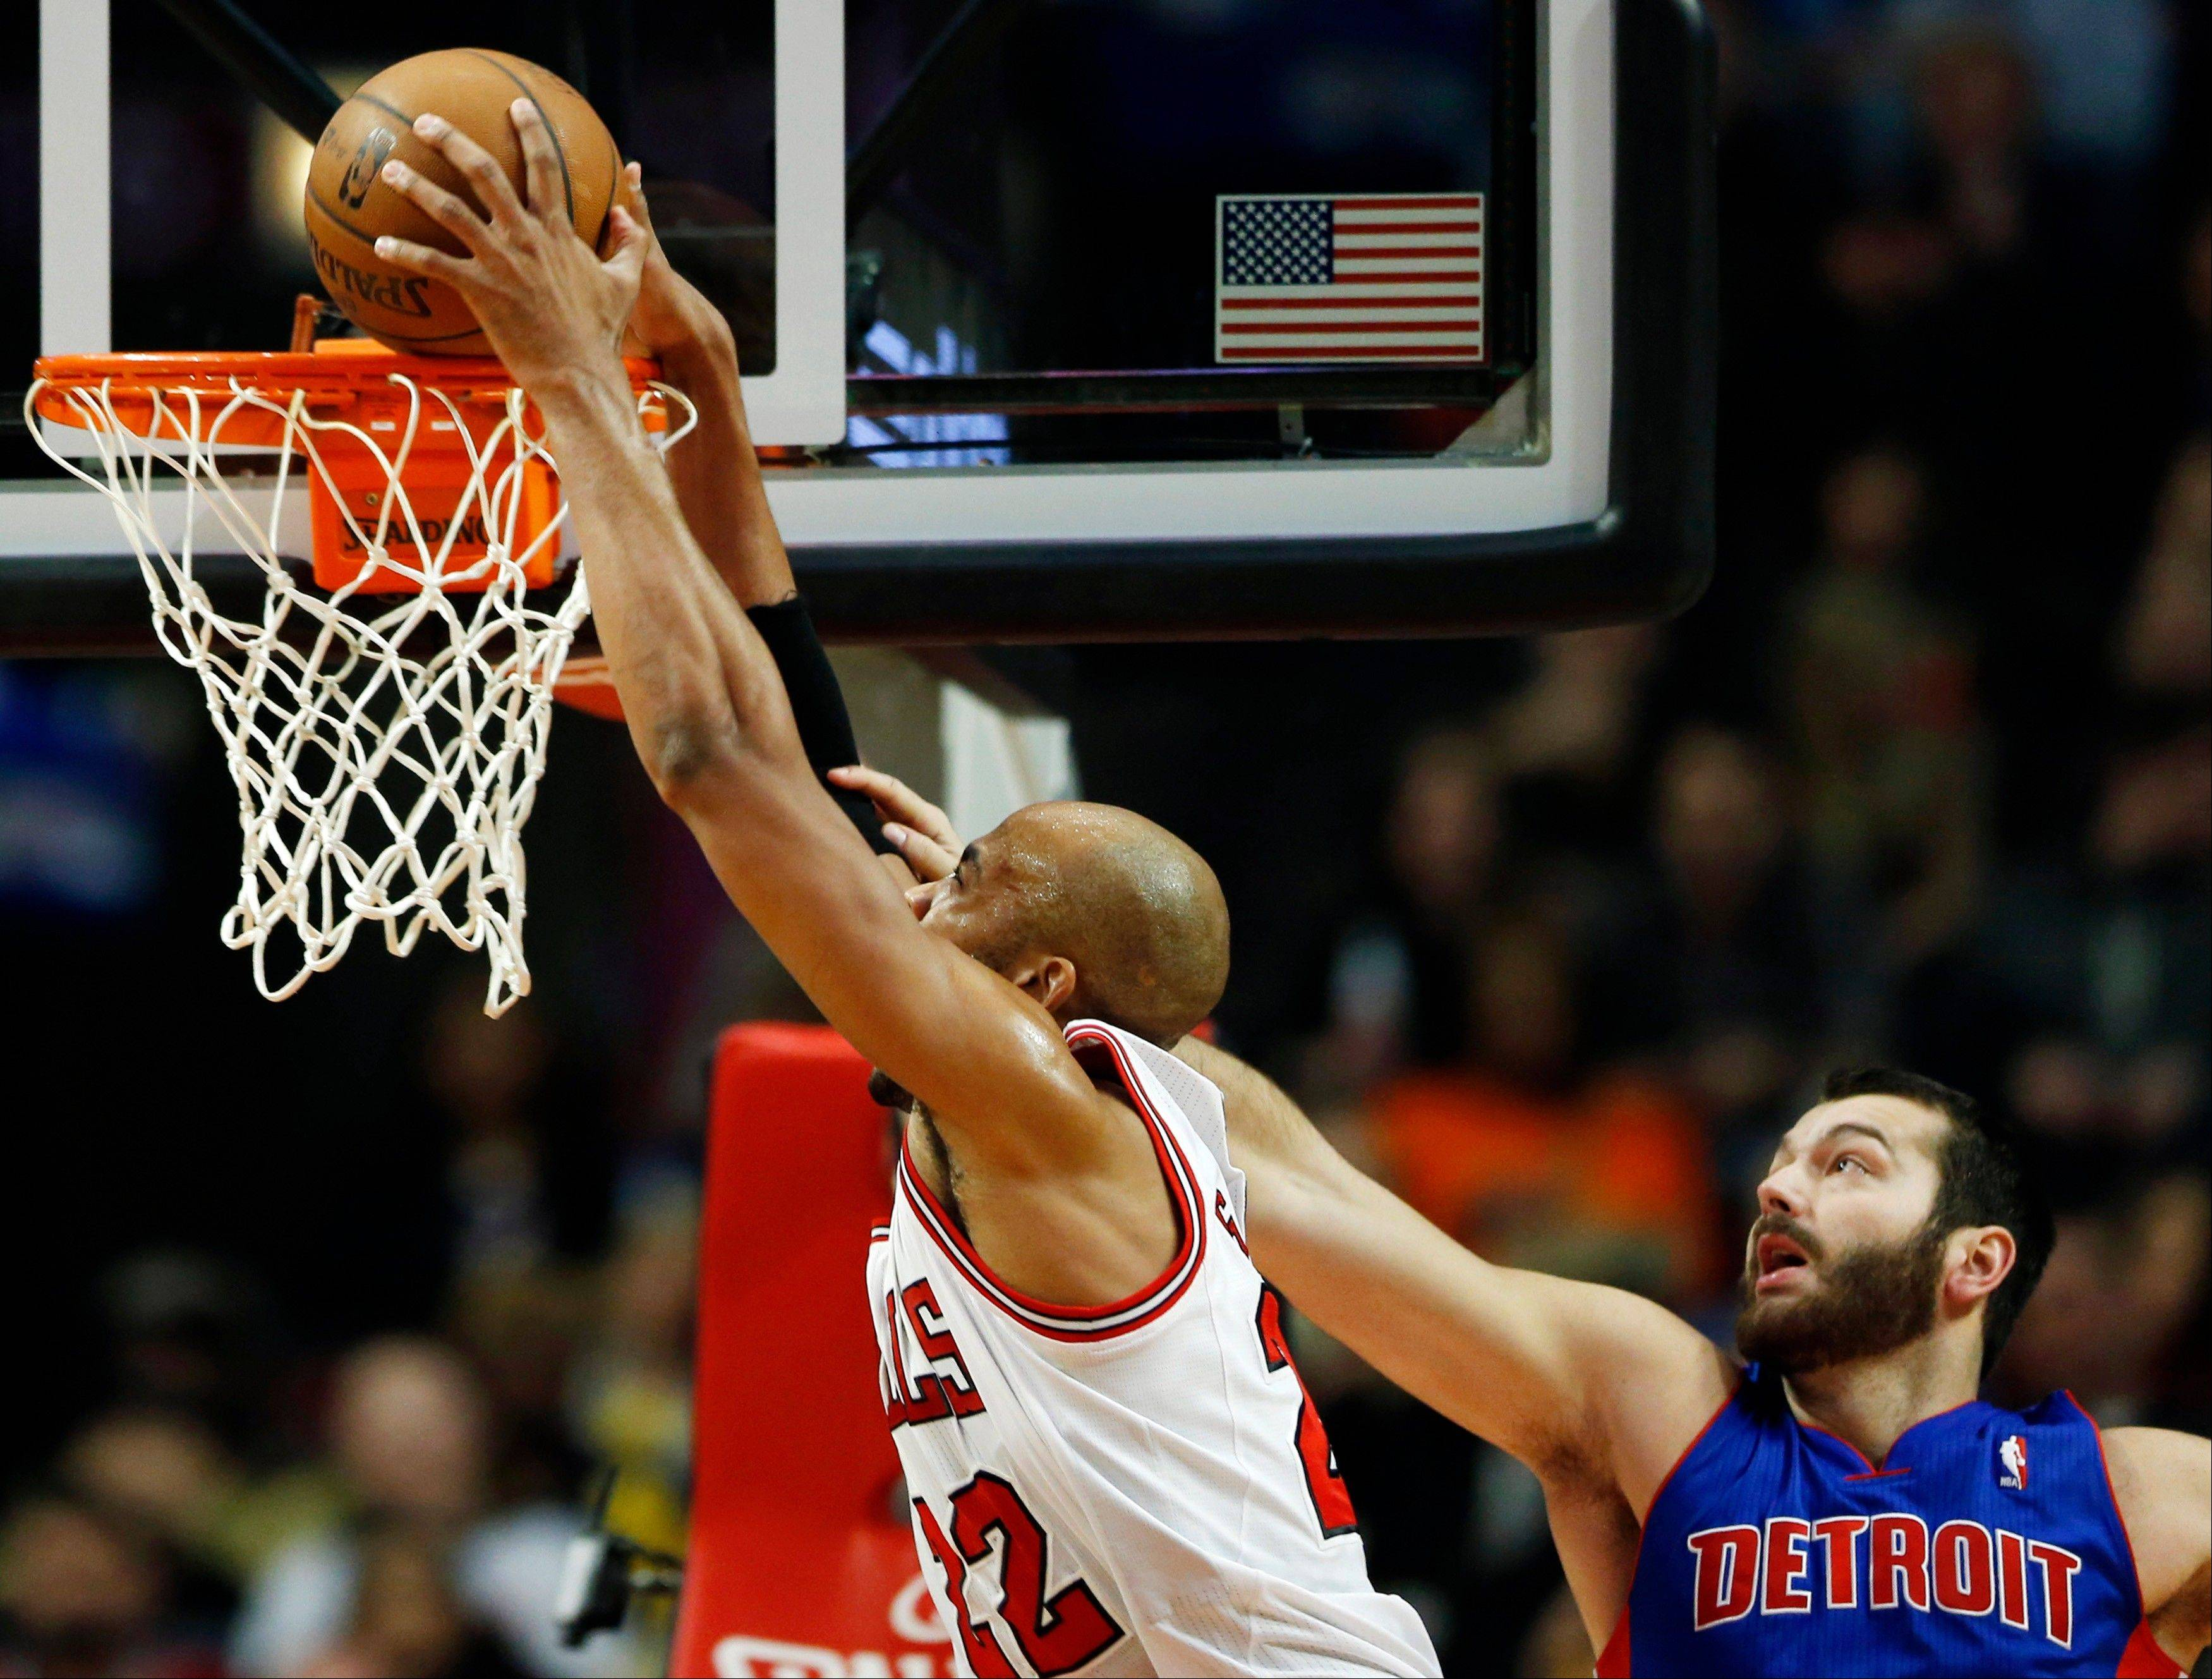 The Bulls' Taj Gibson gets fouled by the Pistons' Josh Harrellson on a drive to the basket Saturday at the United Center.